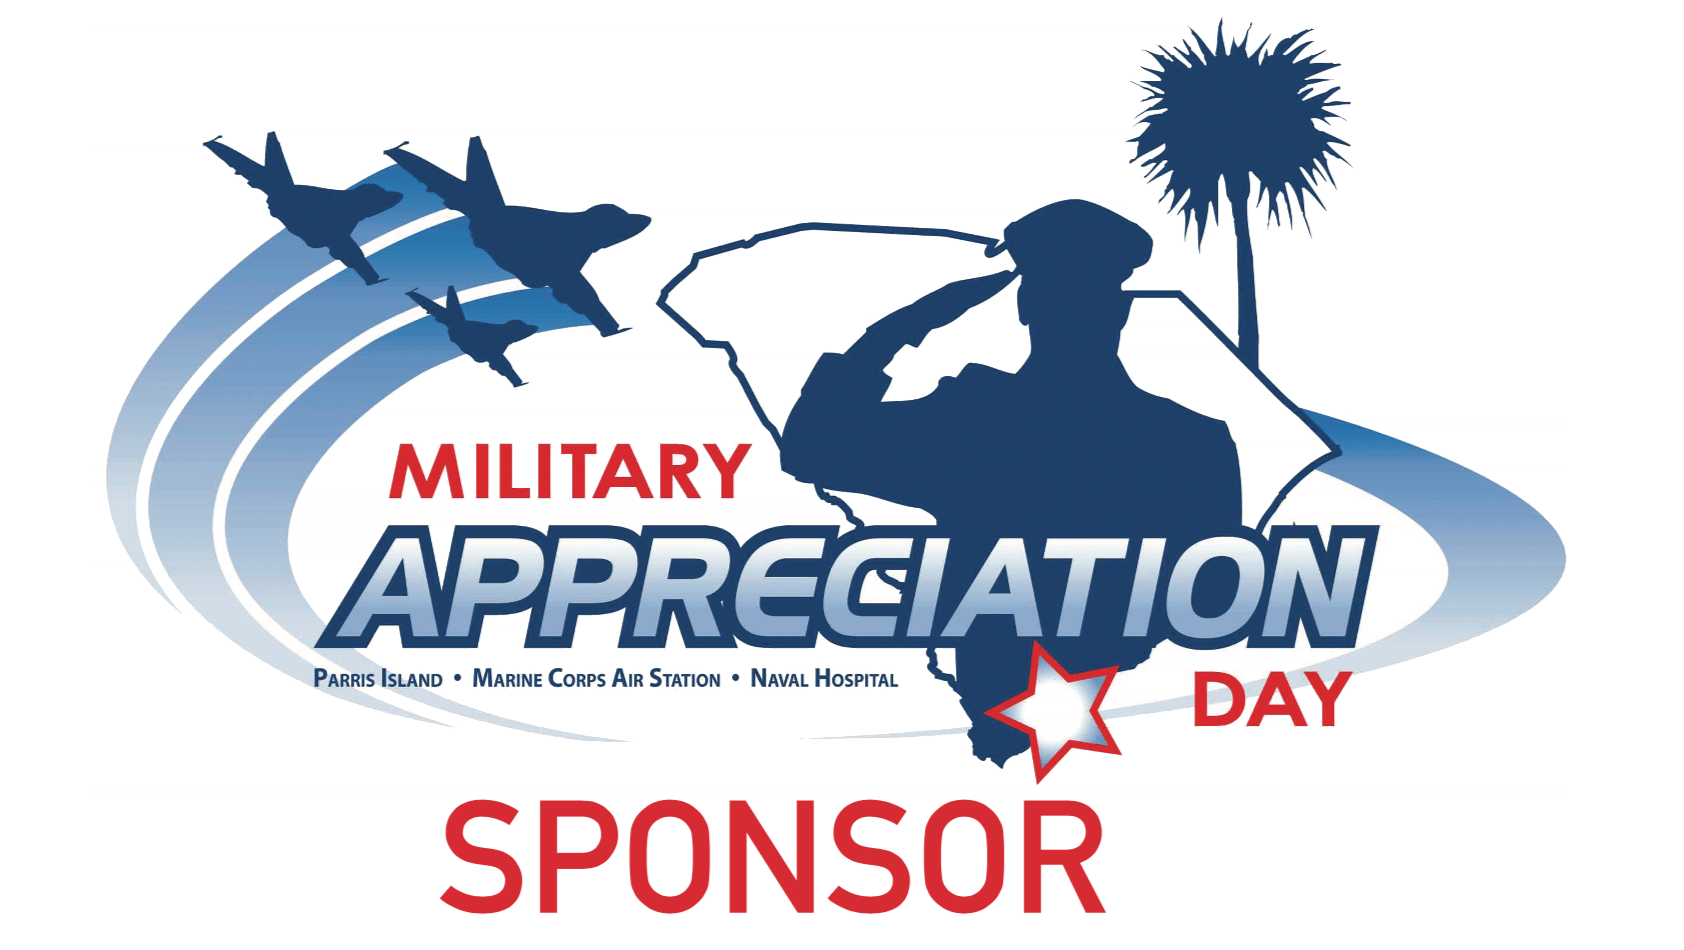 Military Appreciation Day Sponsor